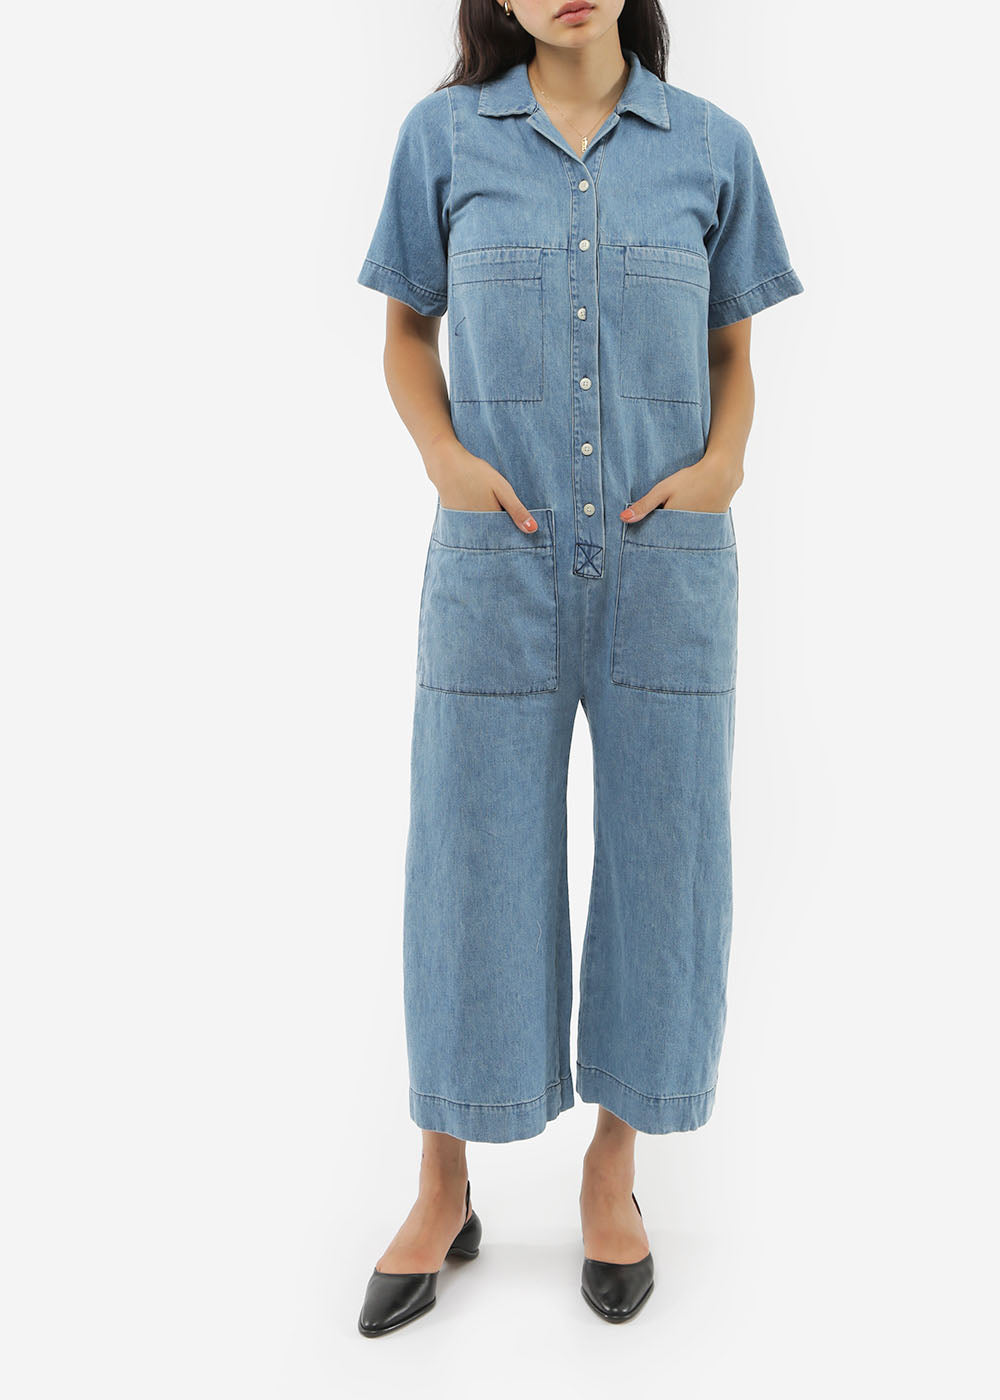 Ilana Kohn Denim Mabel Coverall — New Classics Studios